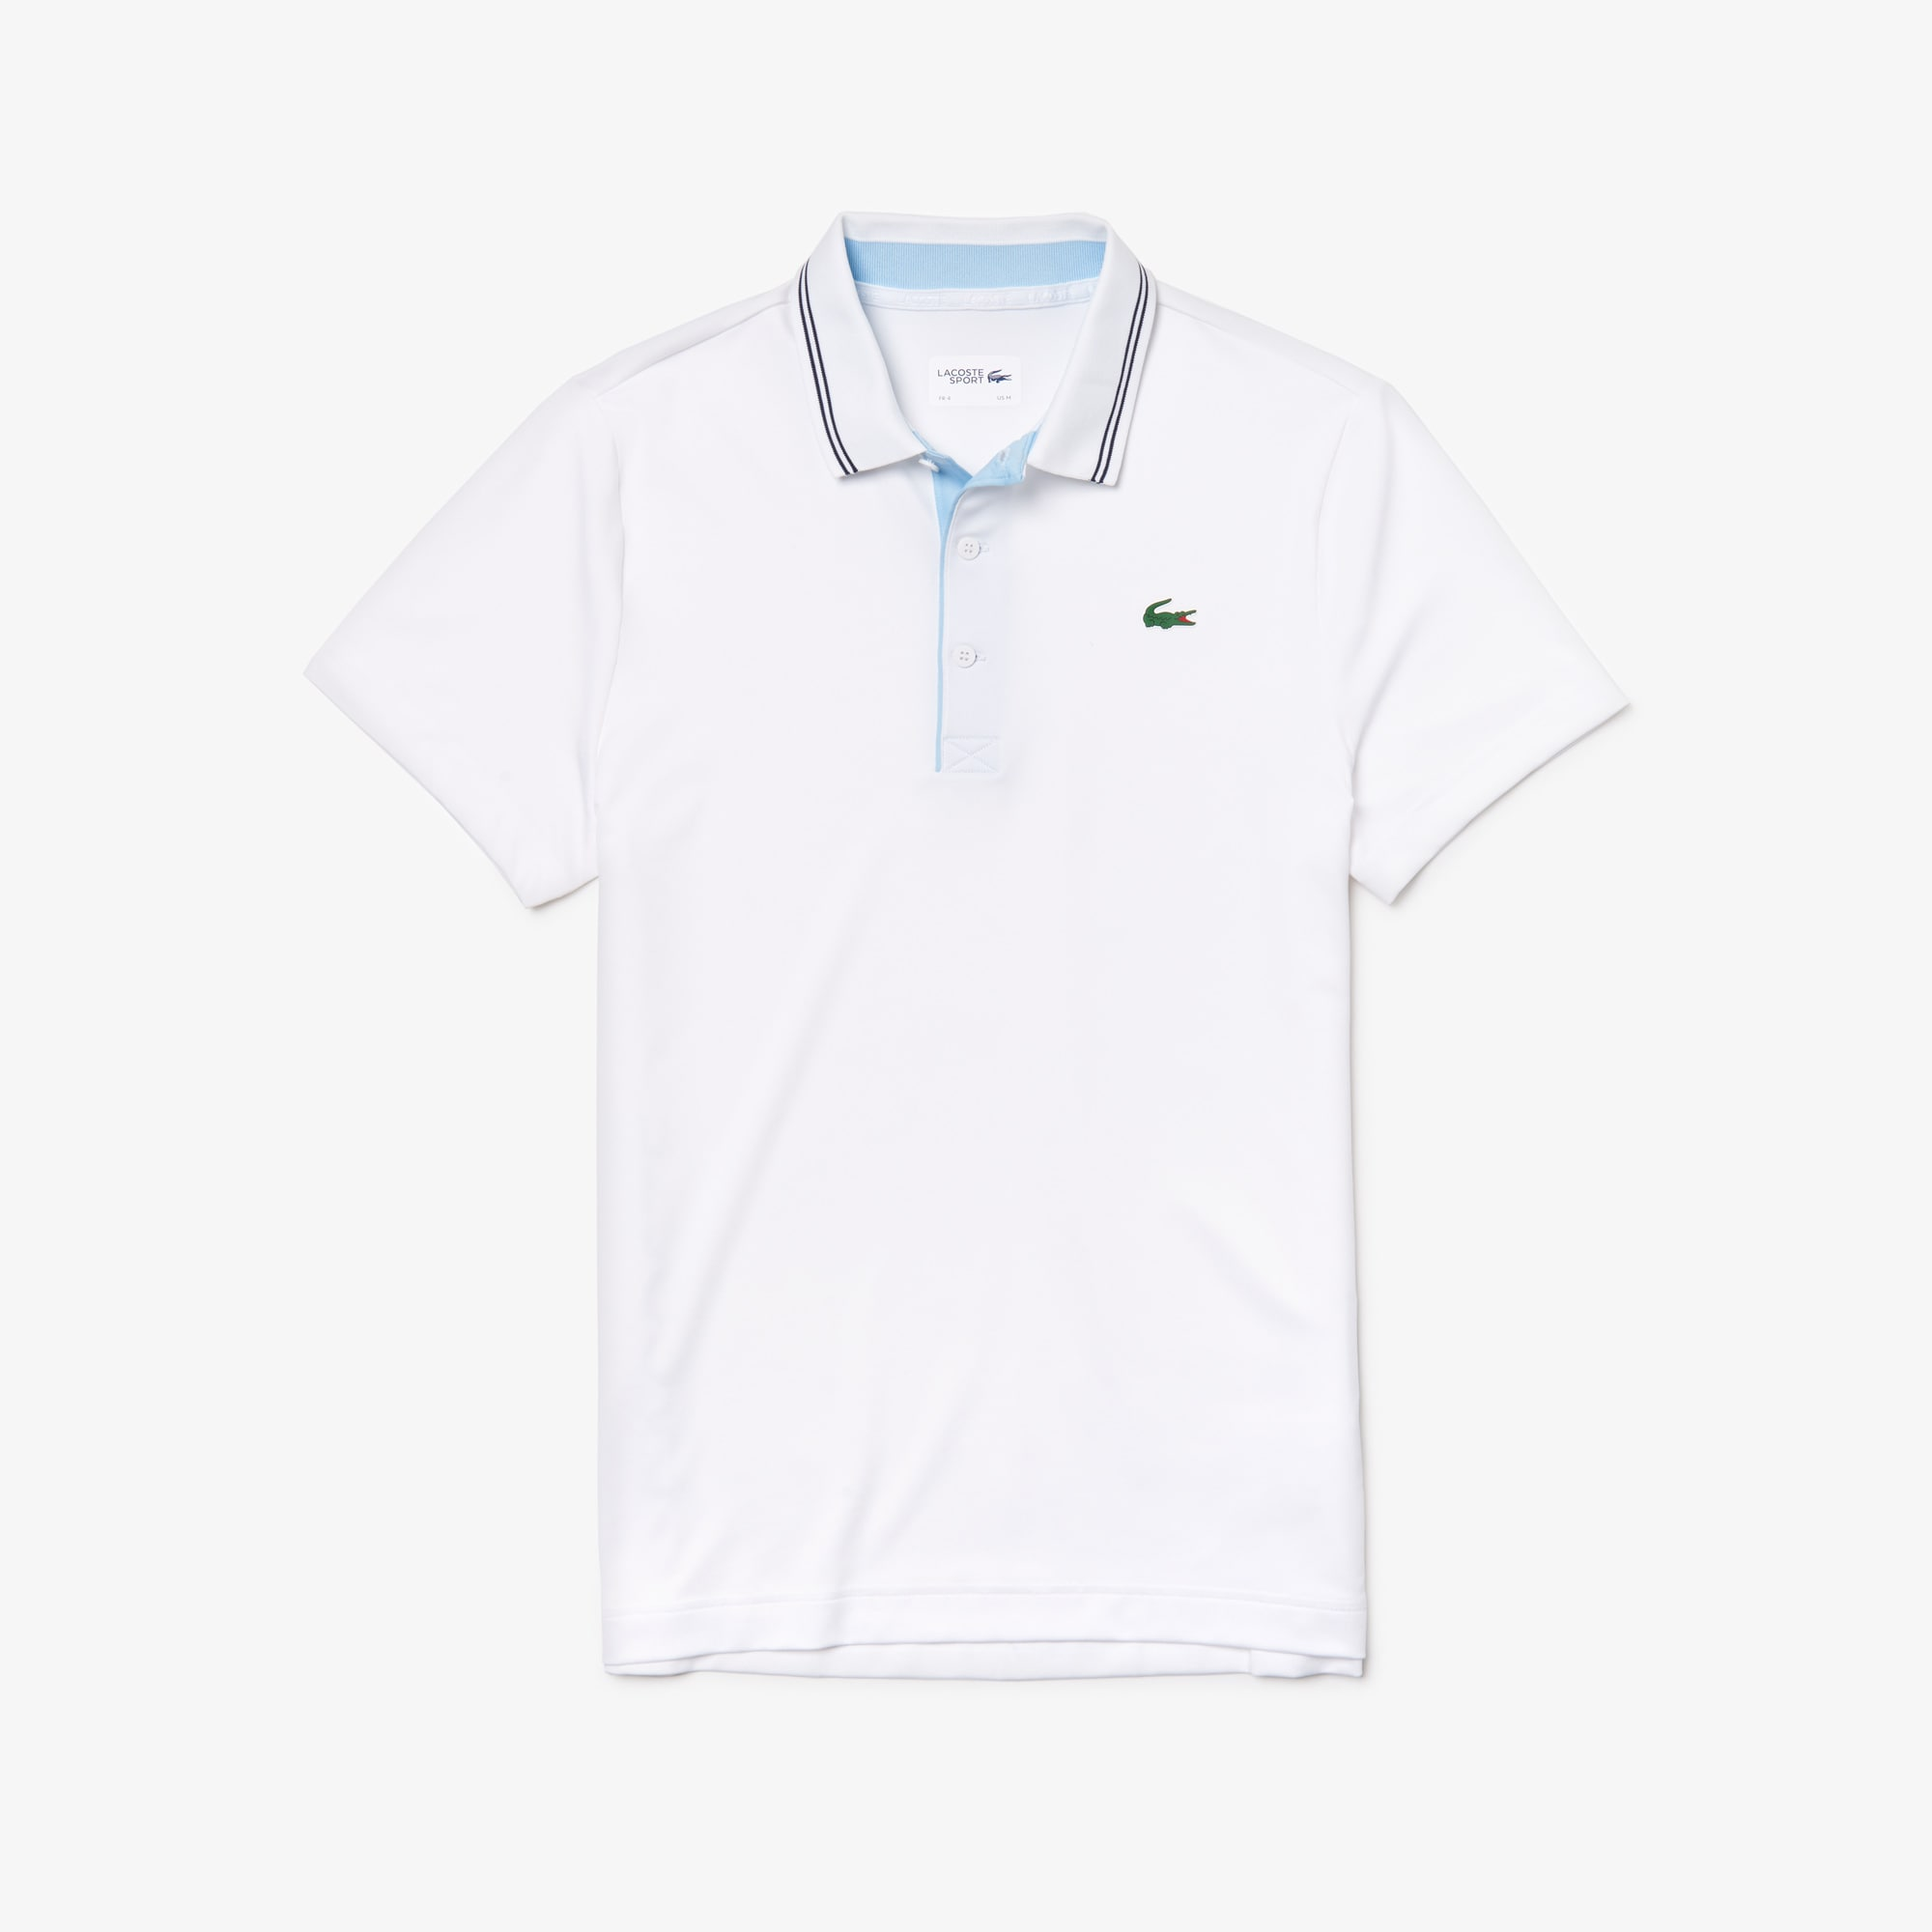 Wiki Limited Consulting – Shirts Lacoste Edge Polo Engineering And OZiuTPkX